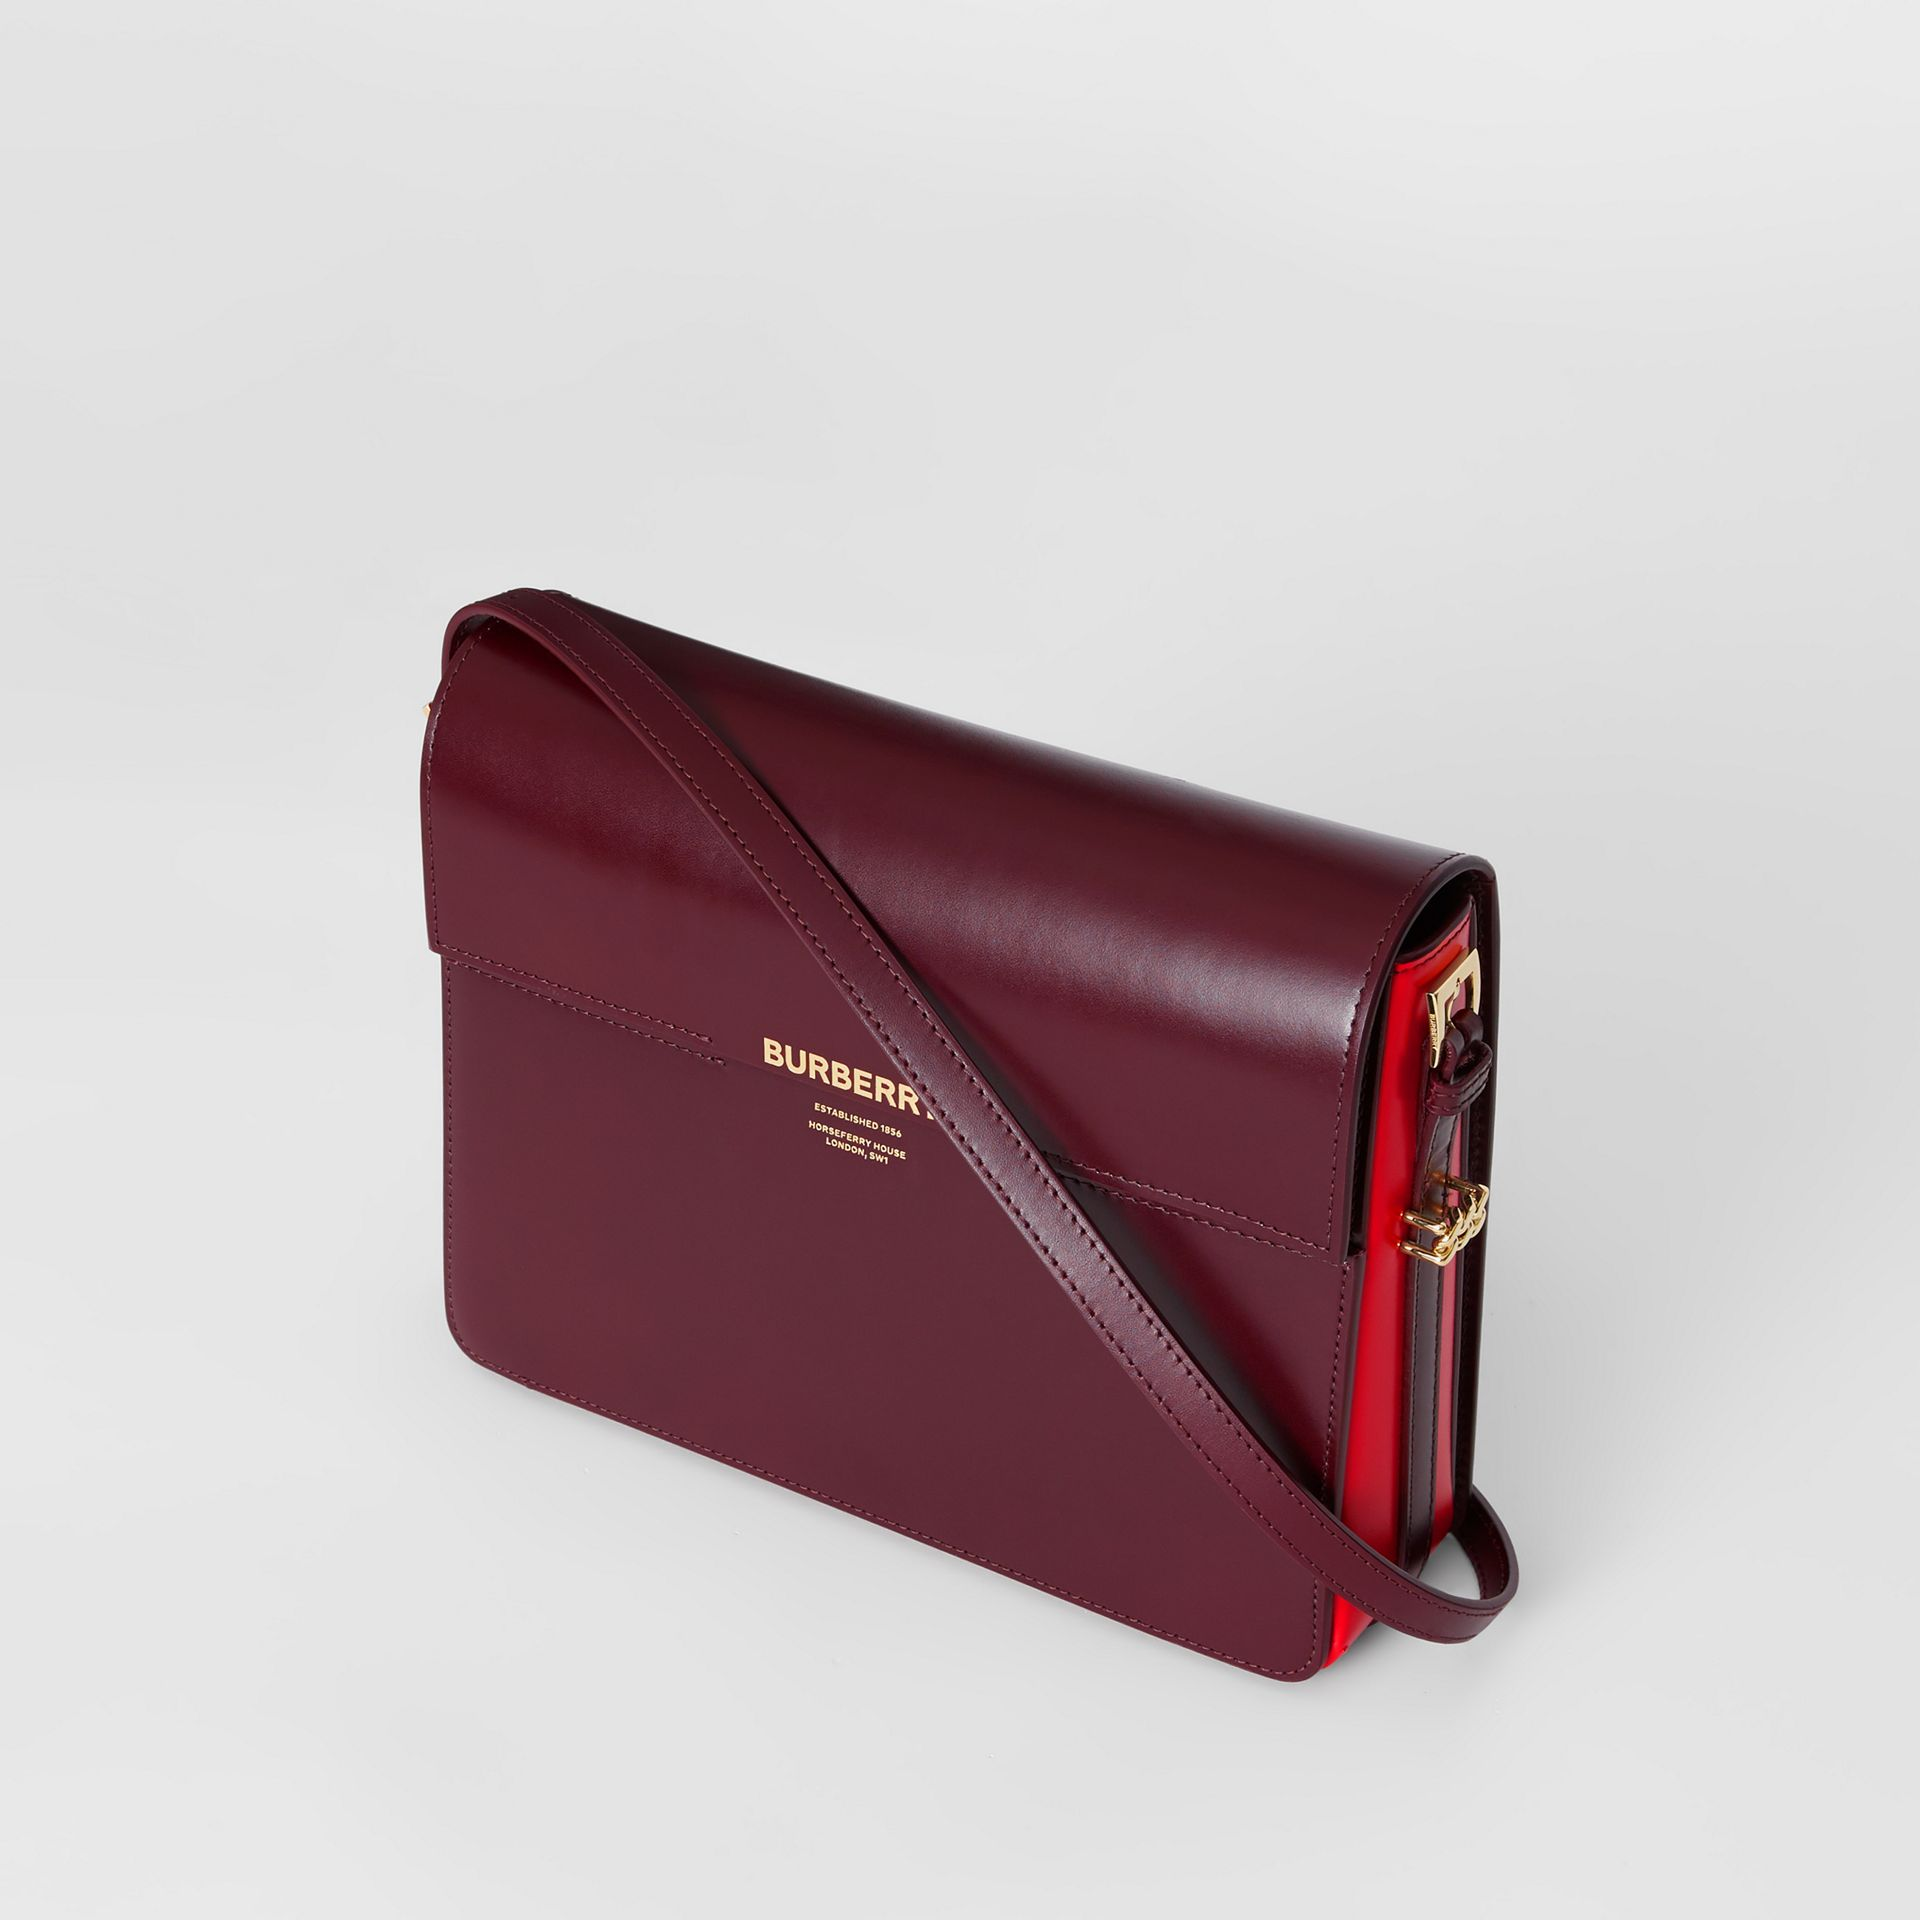 Grand sac Grace en cuir bicolore (Oxblood/rouge Militaire Vif) - Femme | Burberry - photo de la galerie 3